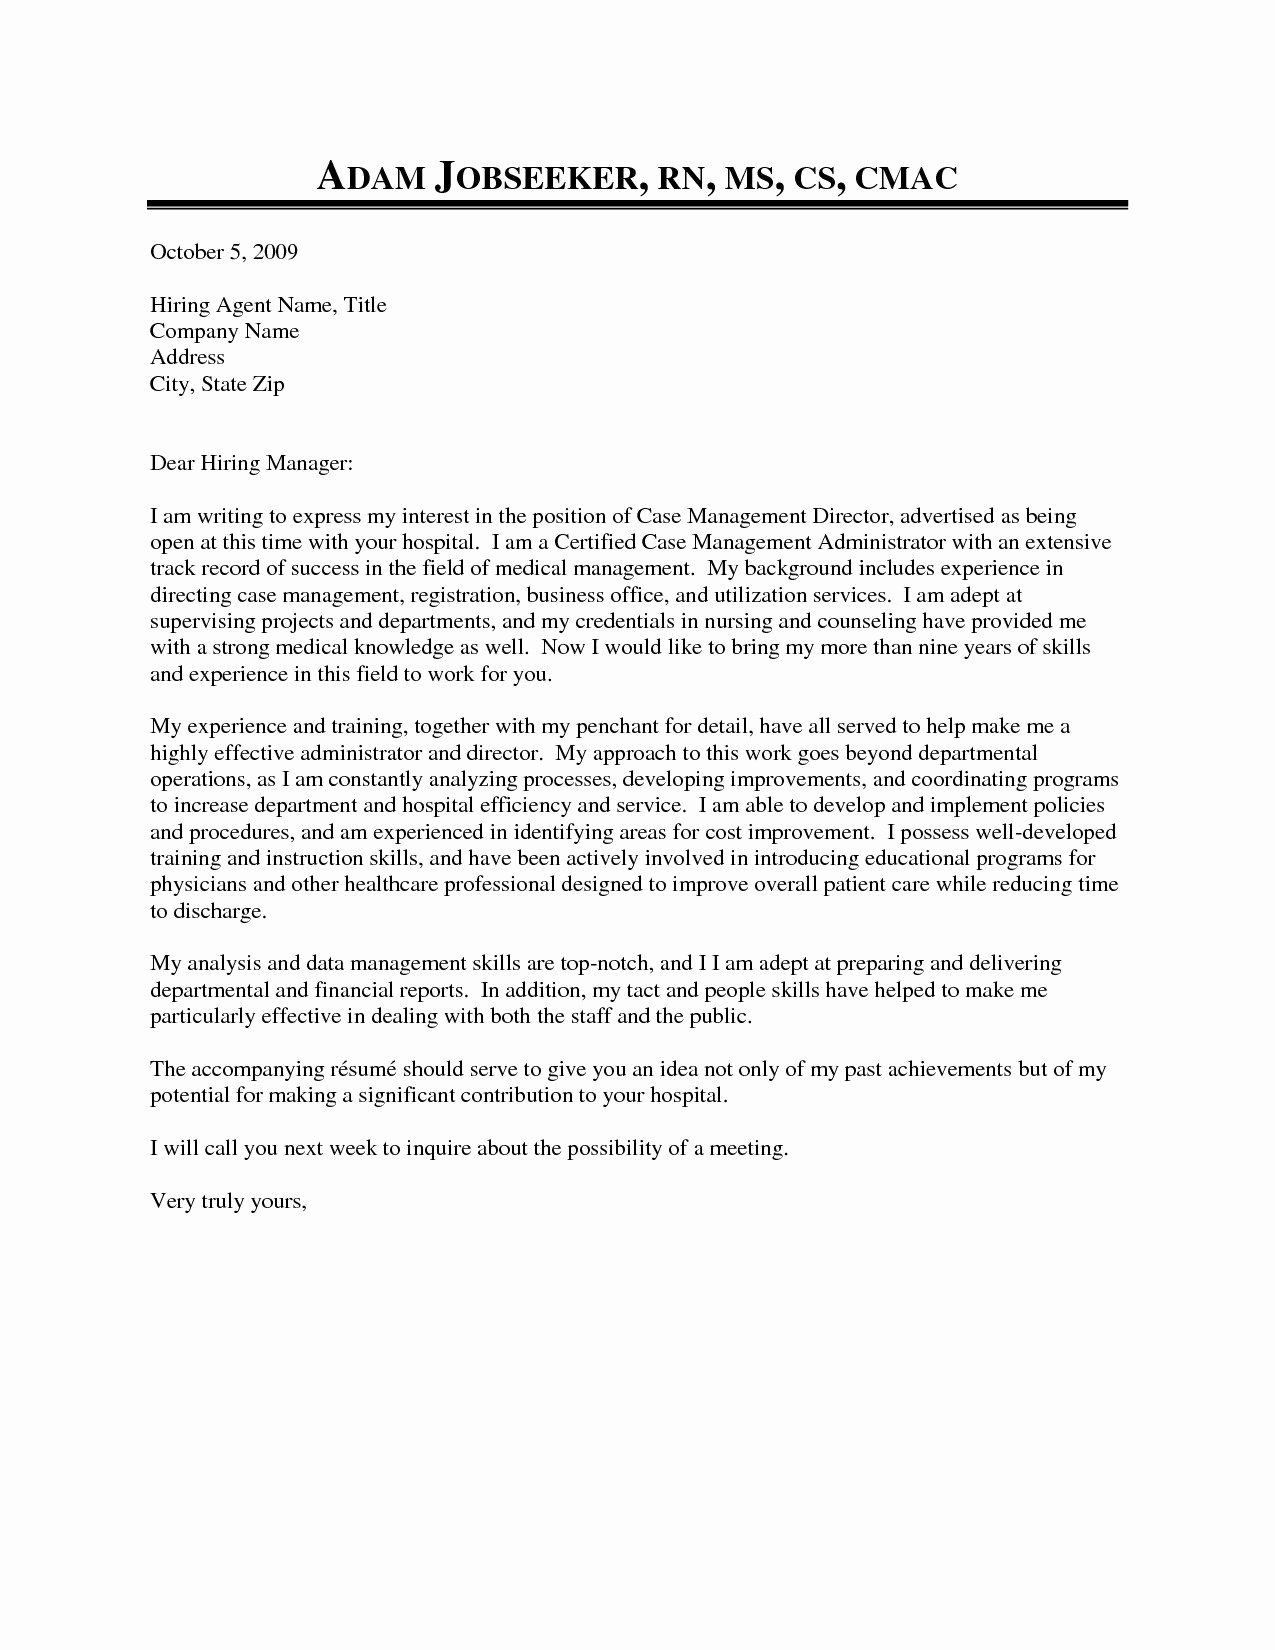 Voluntary Demotion Letter Template Best Of Voluntary Demotion Letter Template Collection